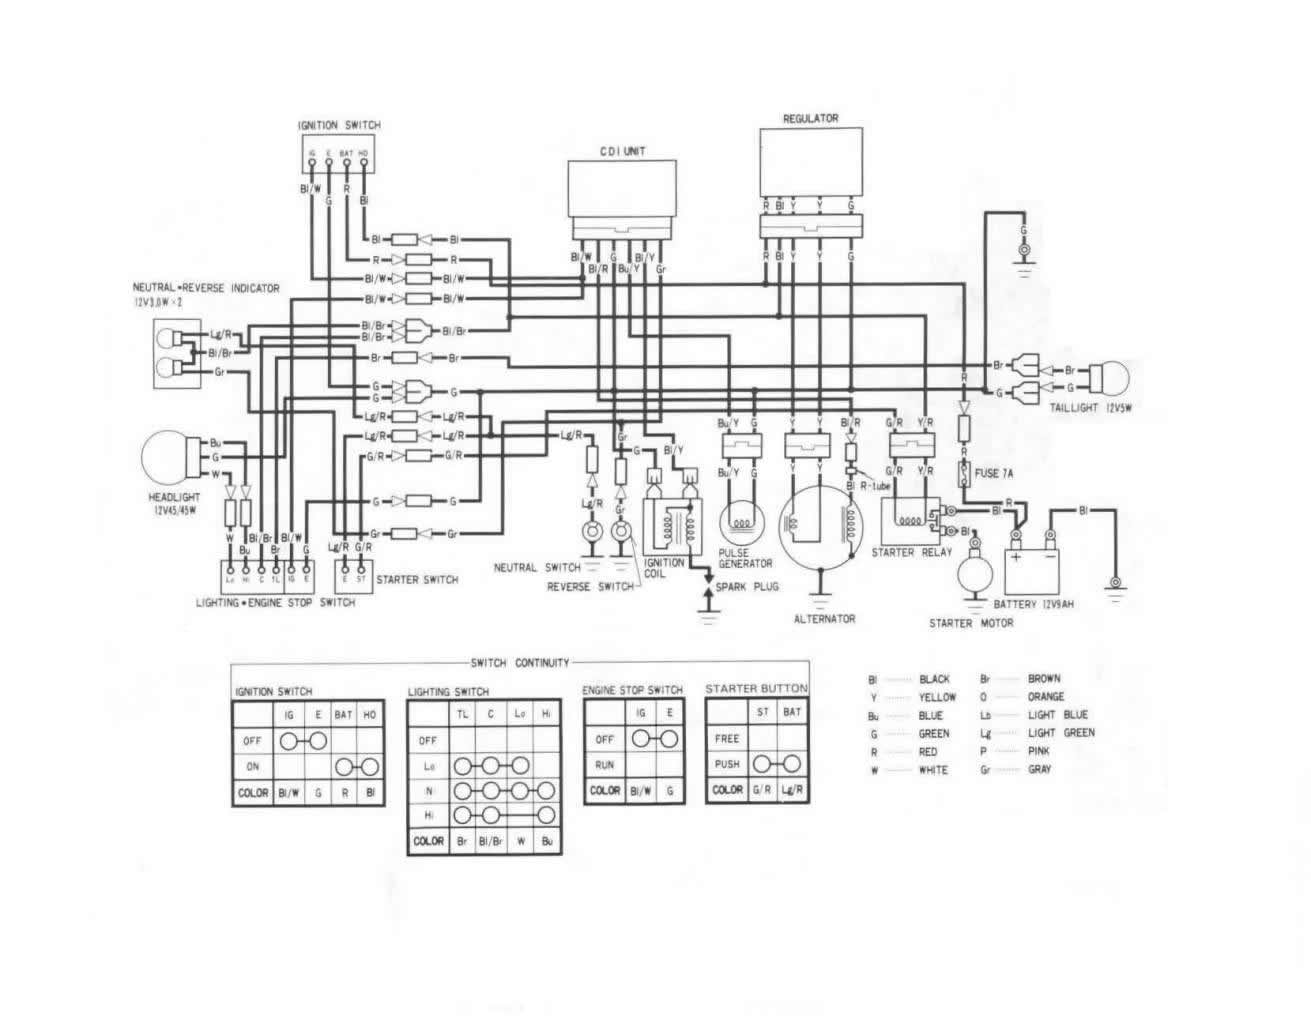 2004 vtr 250 wiring diagram